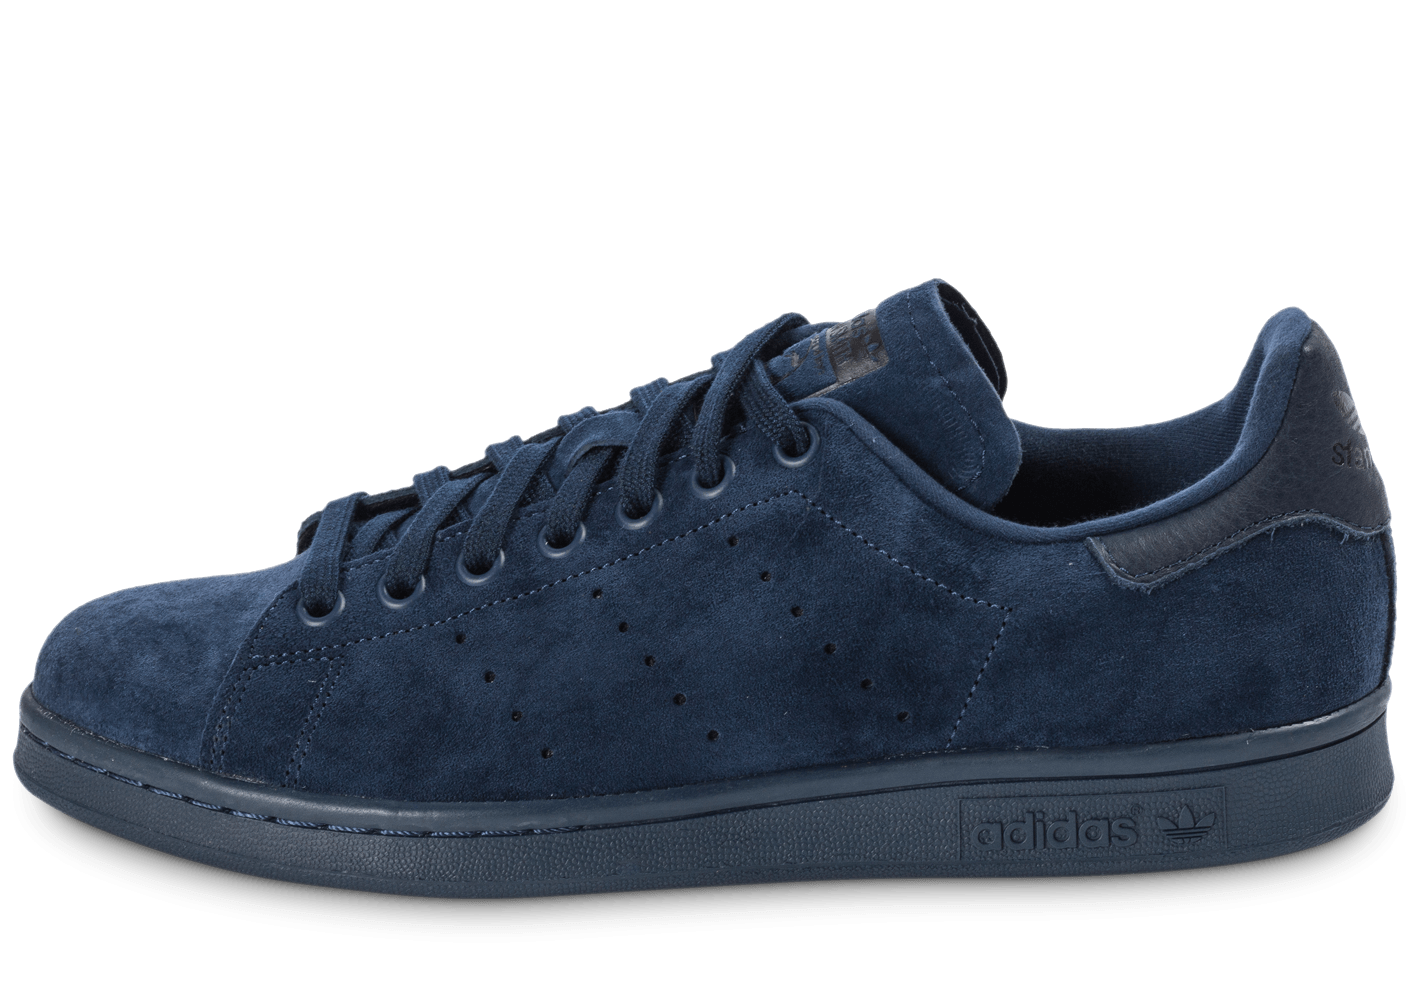 b8486a3bf89 adidas stan smith suede